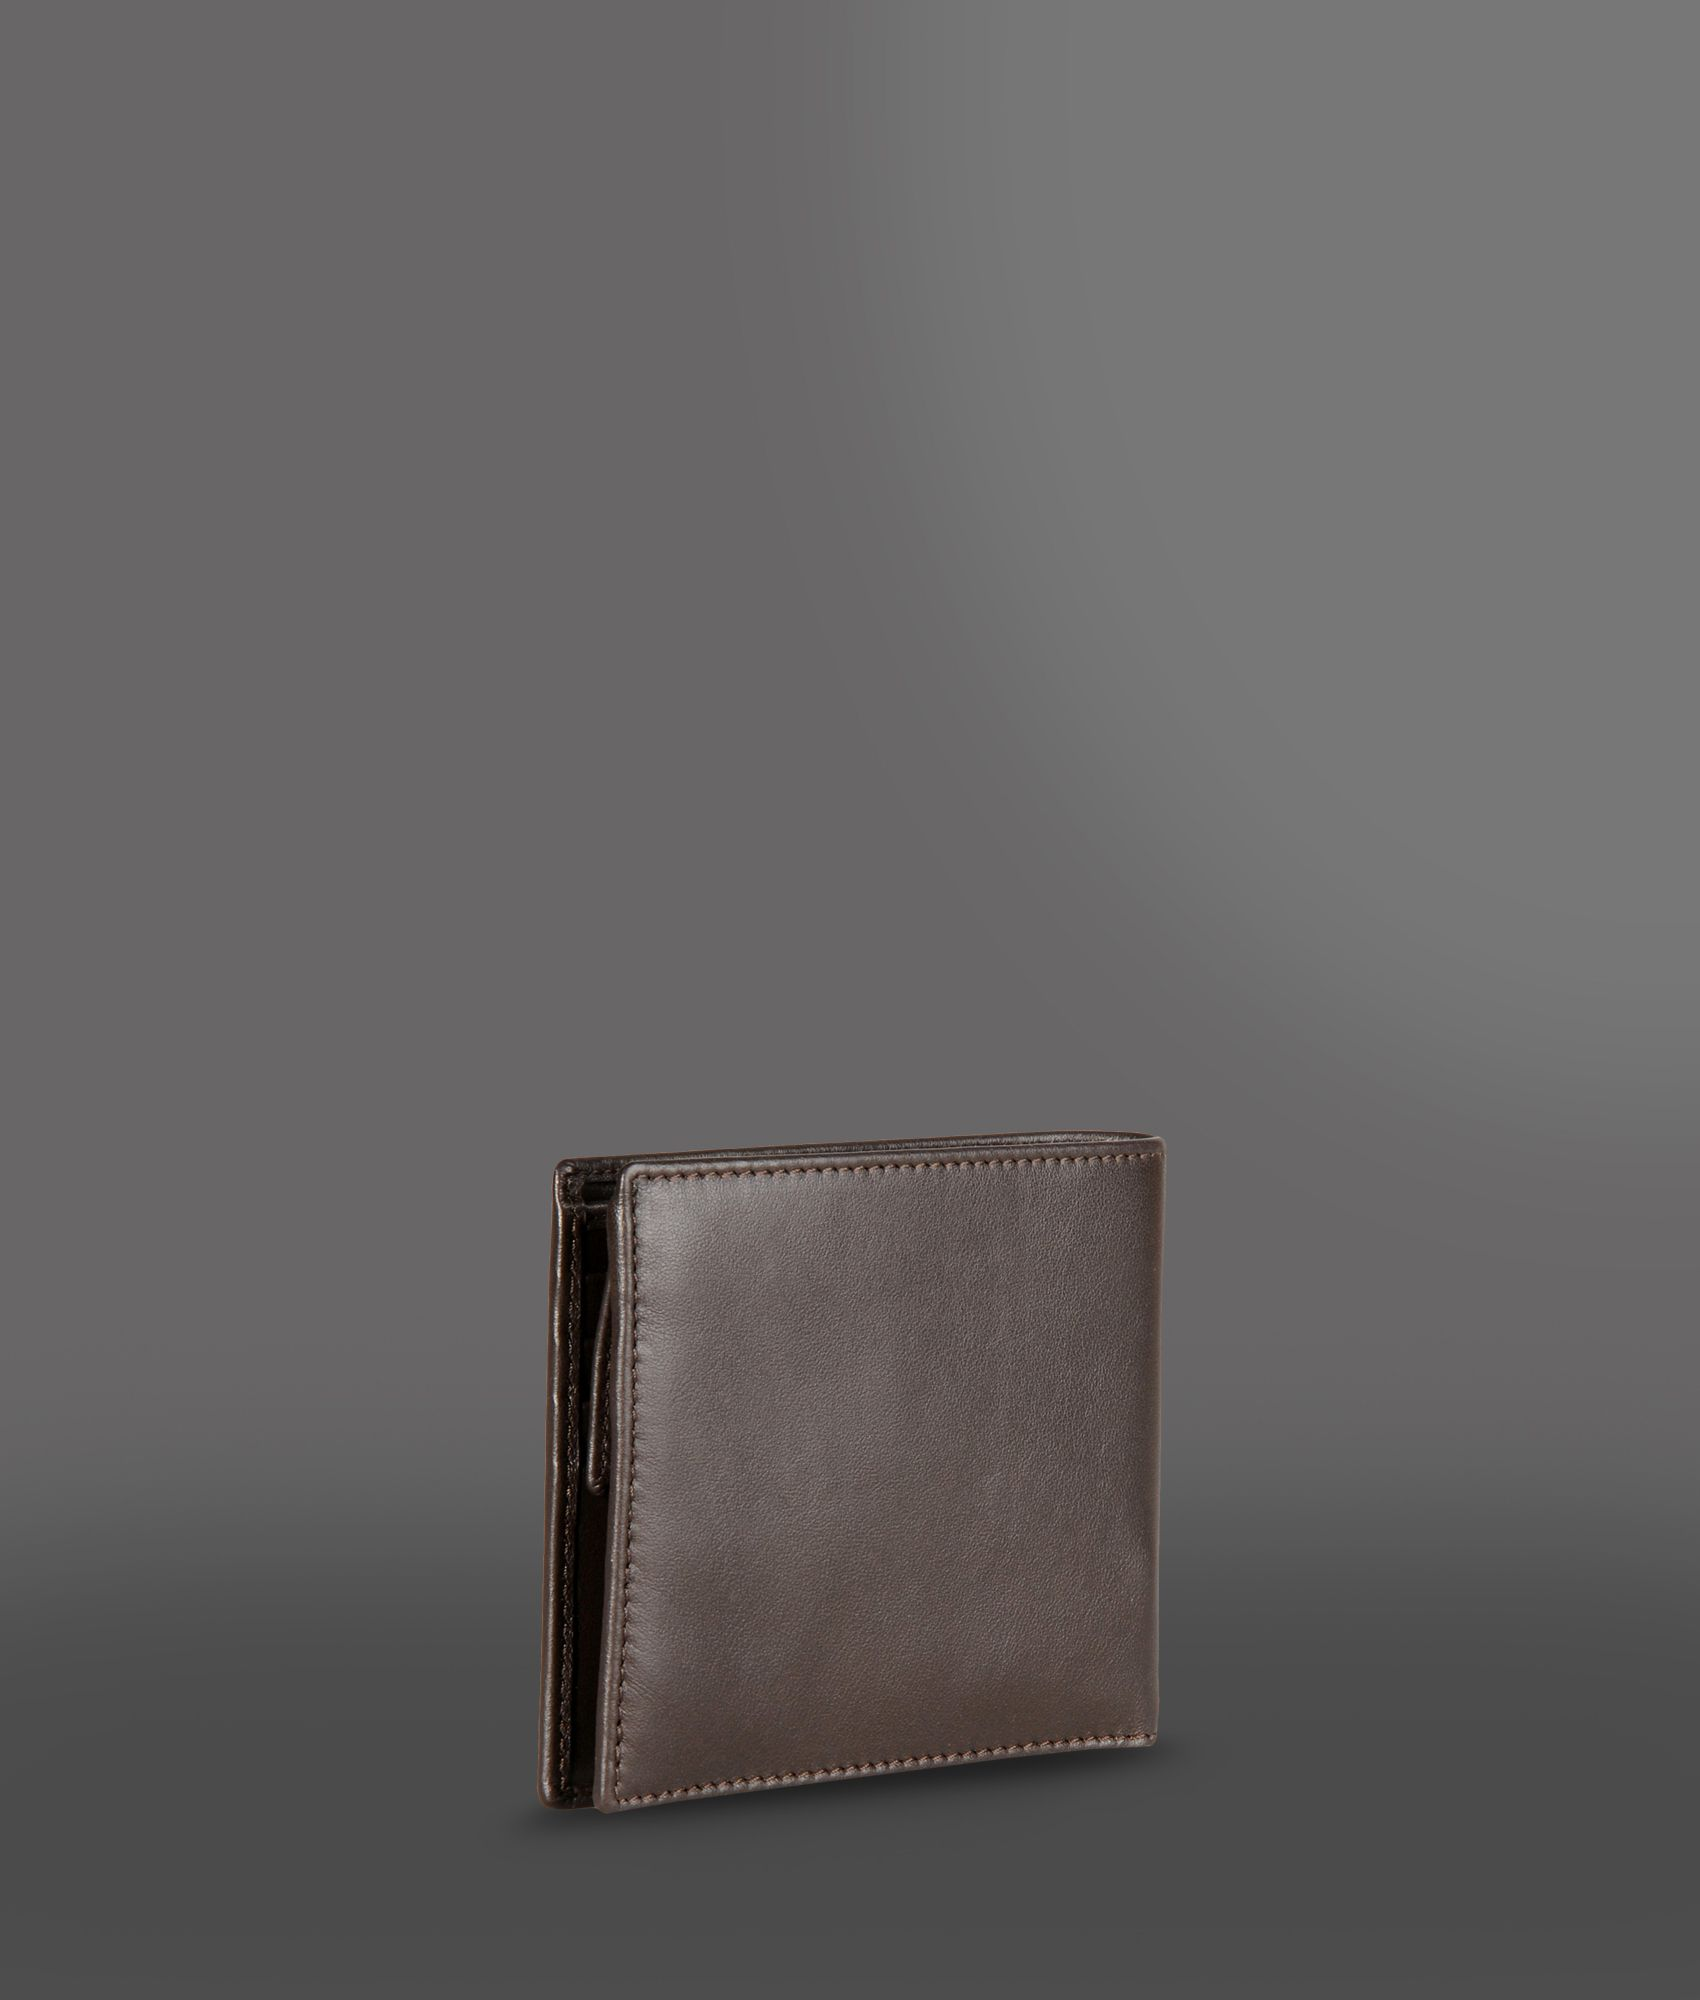 Emporio Armani Leather Wallet With Coin Purse In Brown For